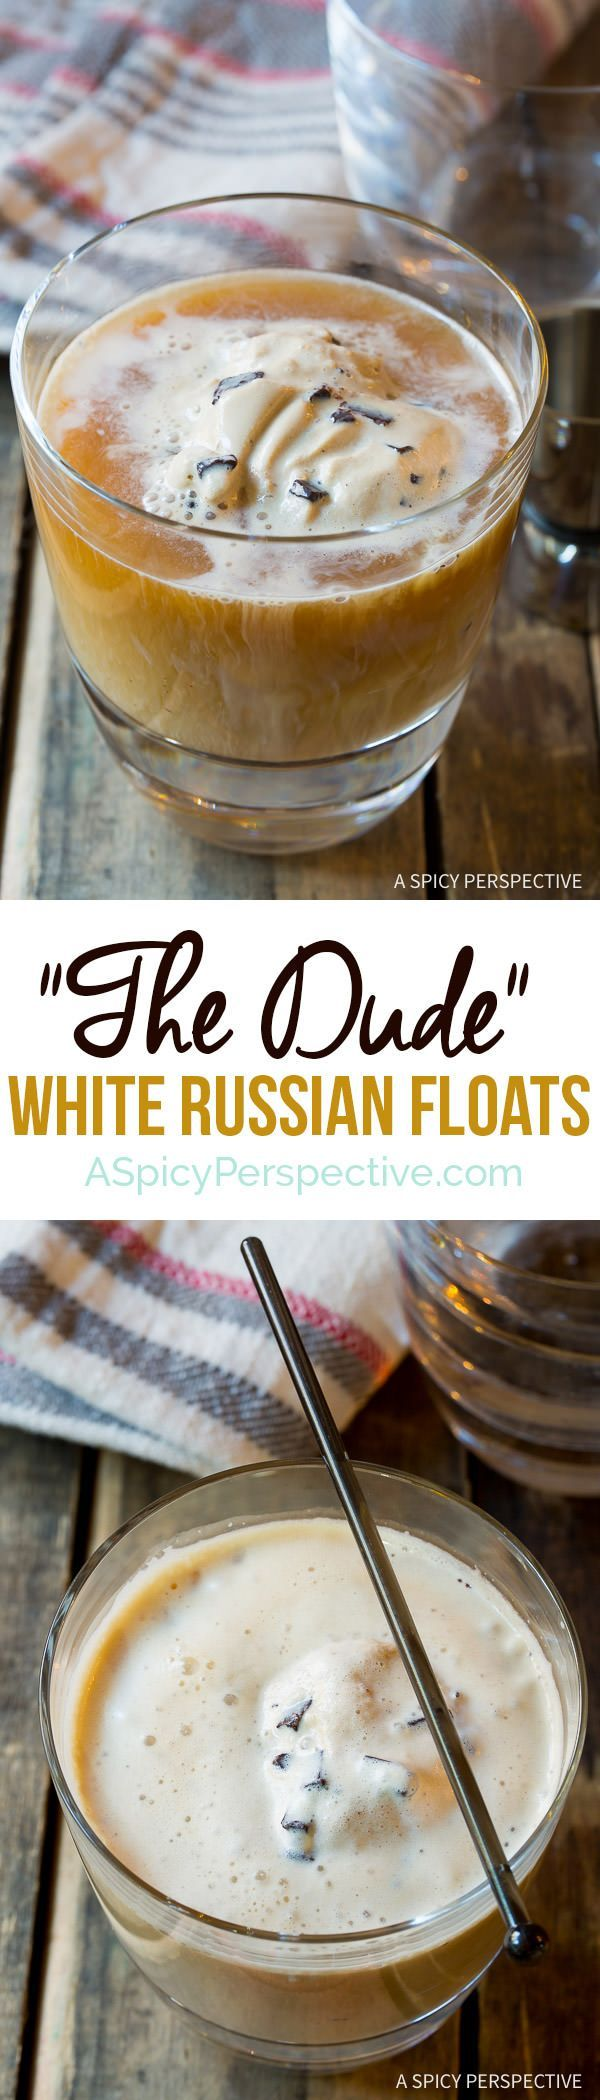 "Celebrate the season with ""The Dude"" White Russian Floats on ASpicyPerspective.com #holiday #cocktail via @spicyperspectiv"